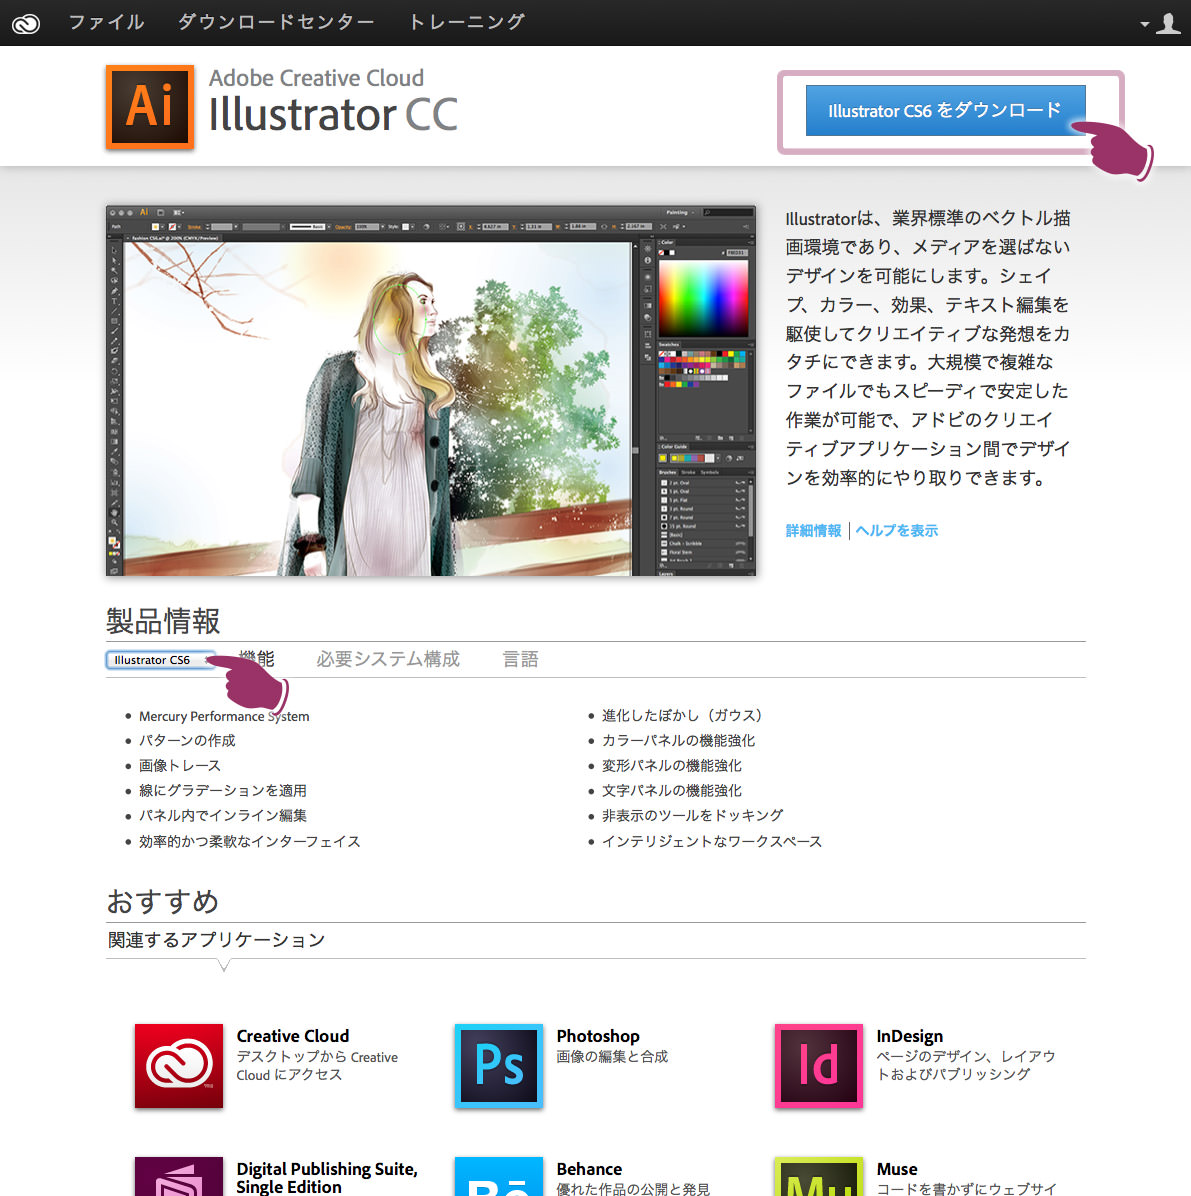 CS6-download-center-4.jpg